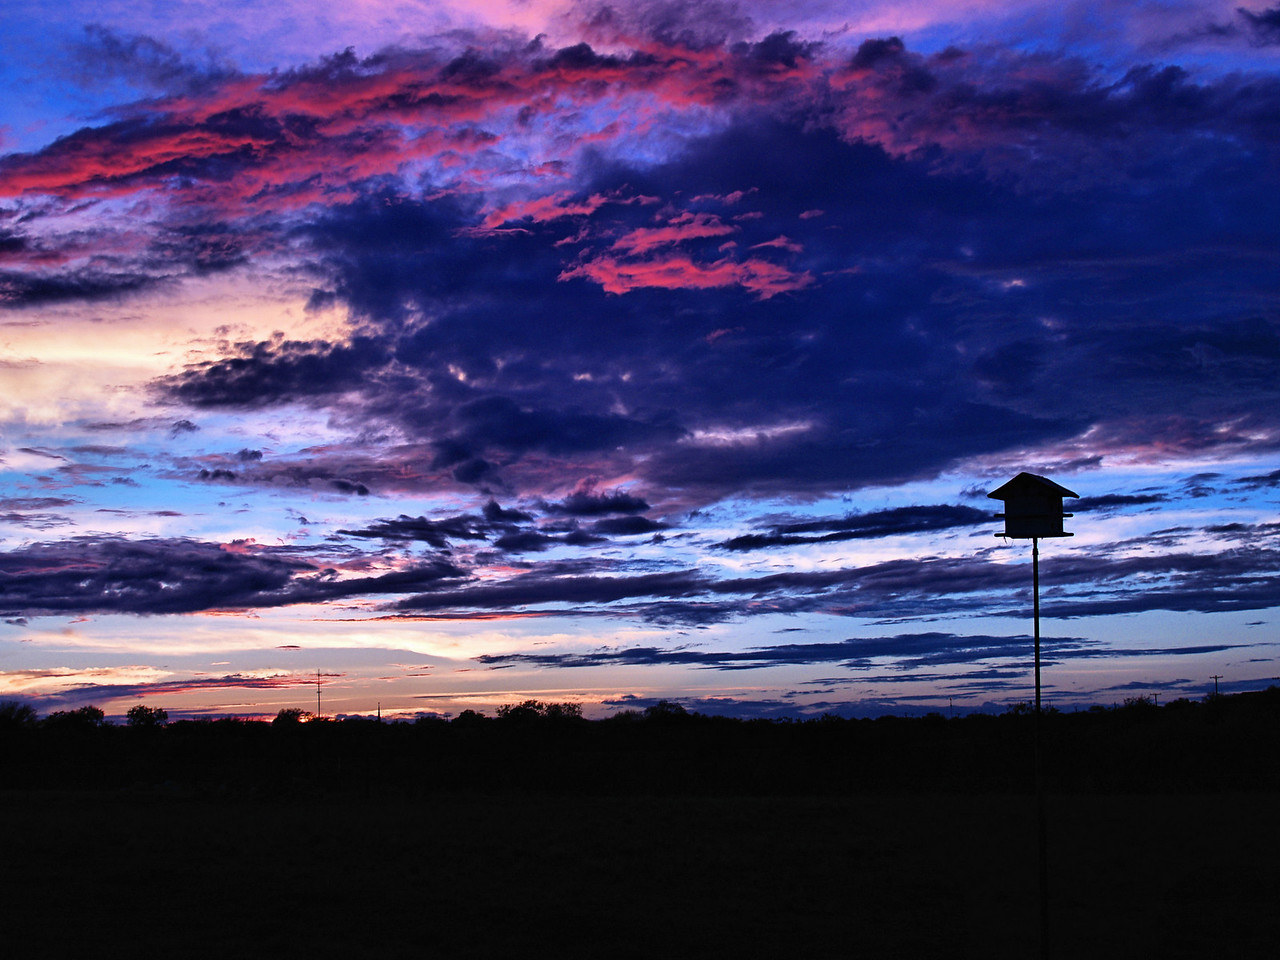 OLYMPUS DIGITAL CAMERA--Nice colors in the clouds as the sun goes down.